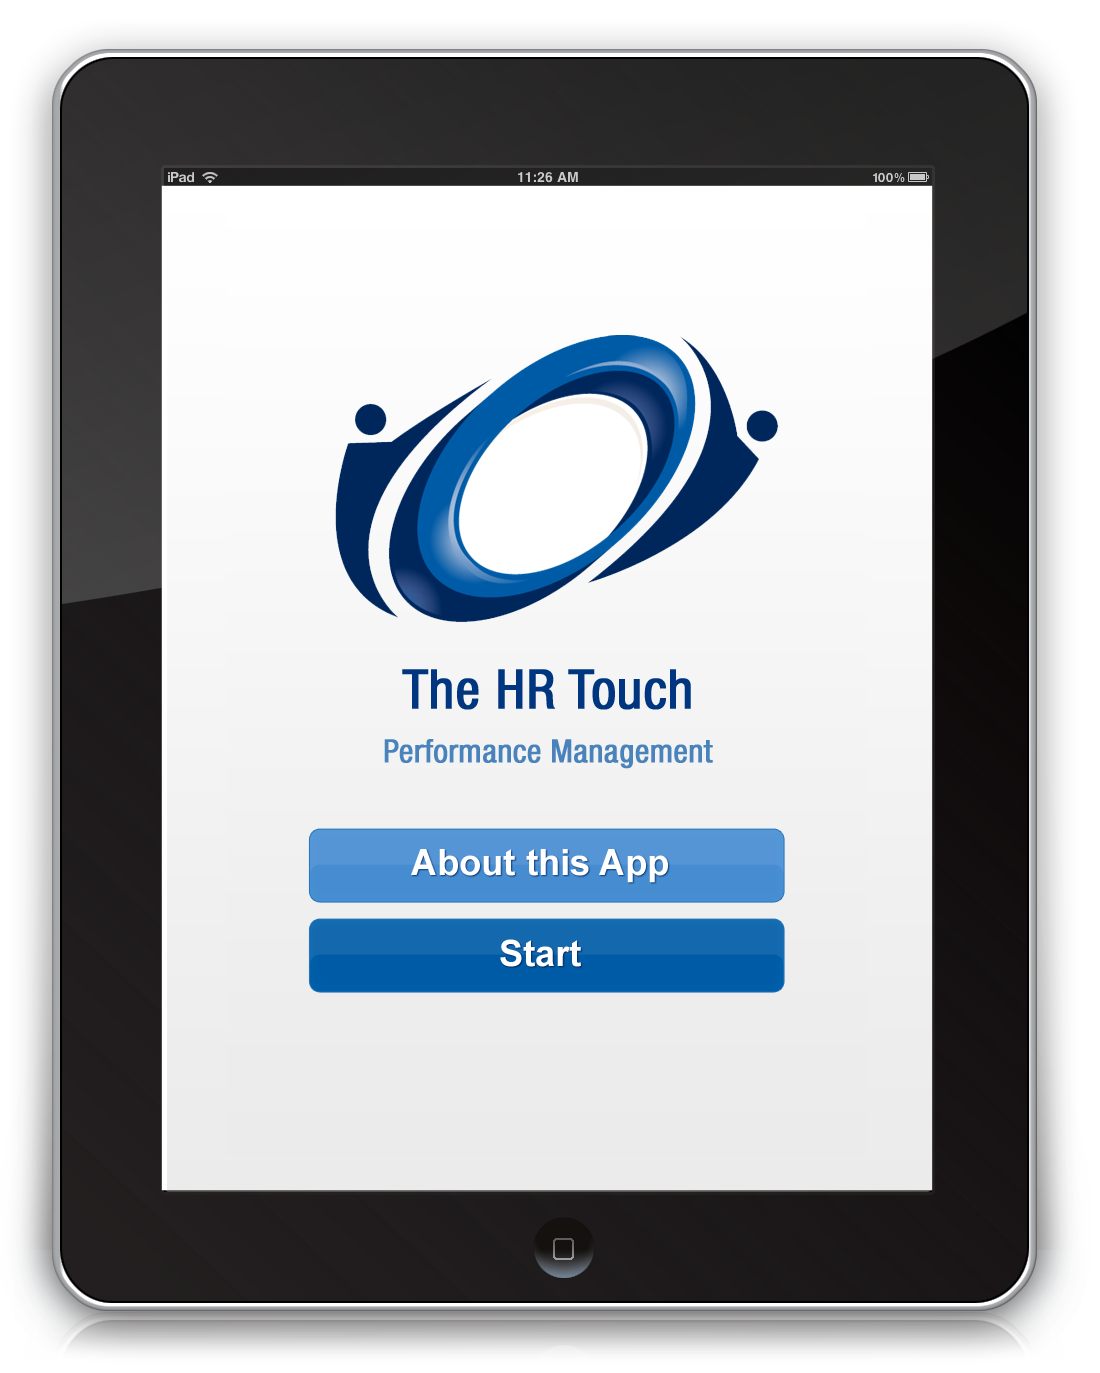 The HR Touch - iPad.png